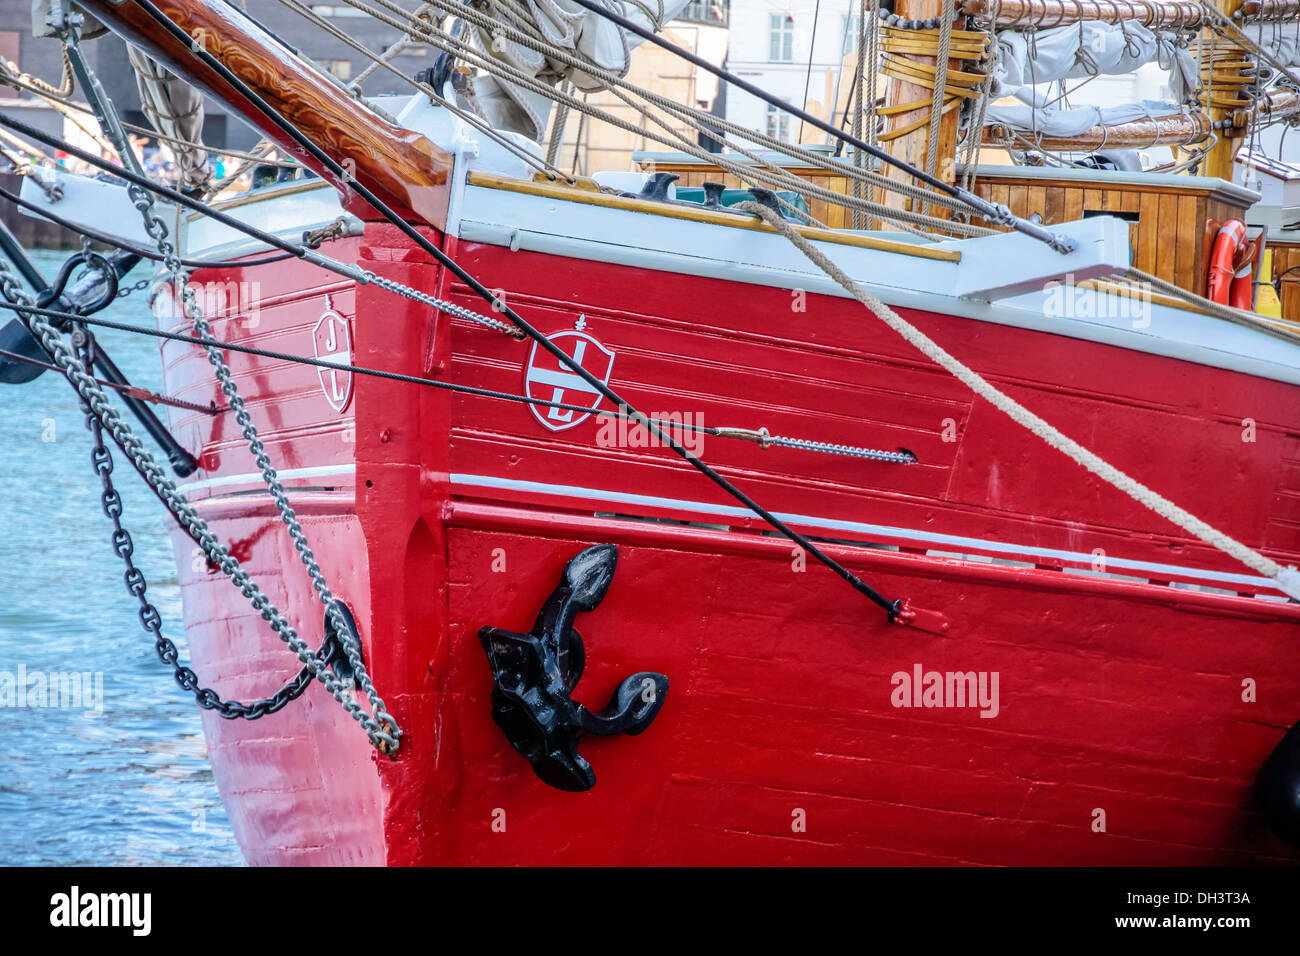 Red bow of an old sailing ship in Amaliehaven, Copenhagen, Denmark - Stock Image